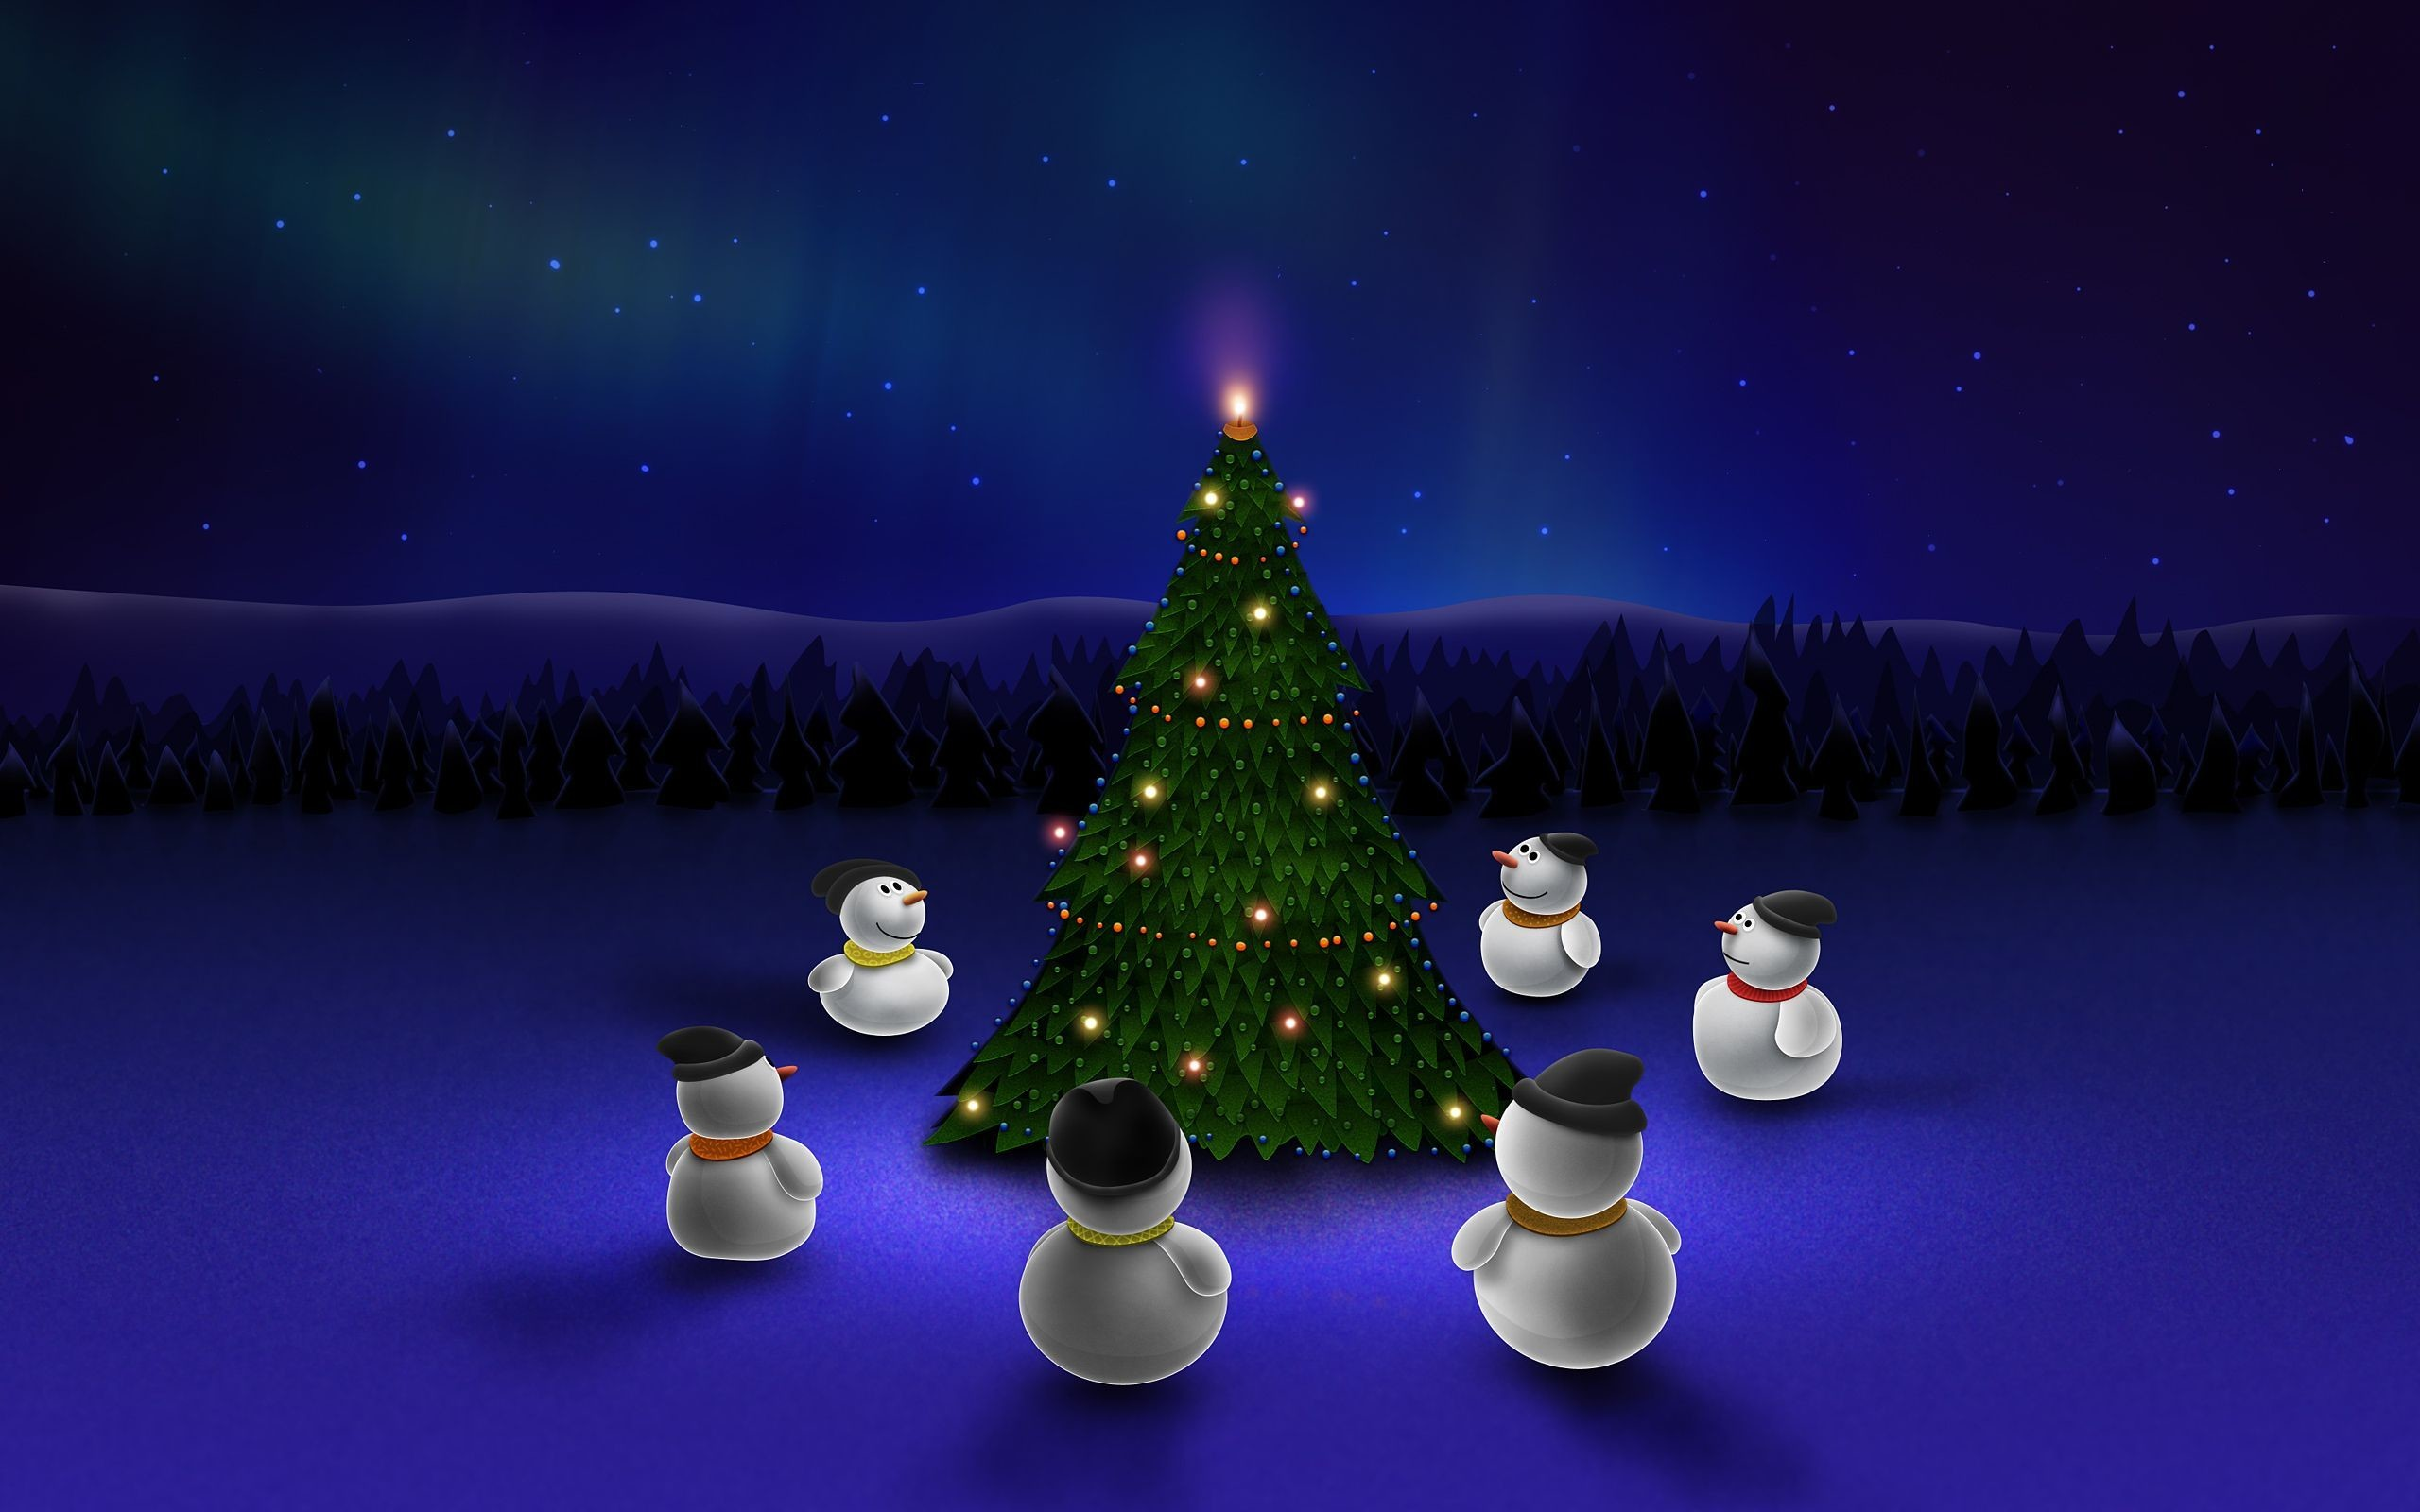 Res: 2560x1600, Waiting for the xmas Wallpapers | HD Wallpapers